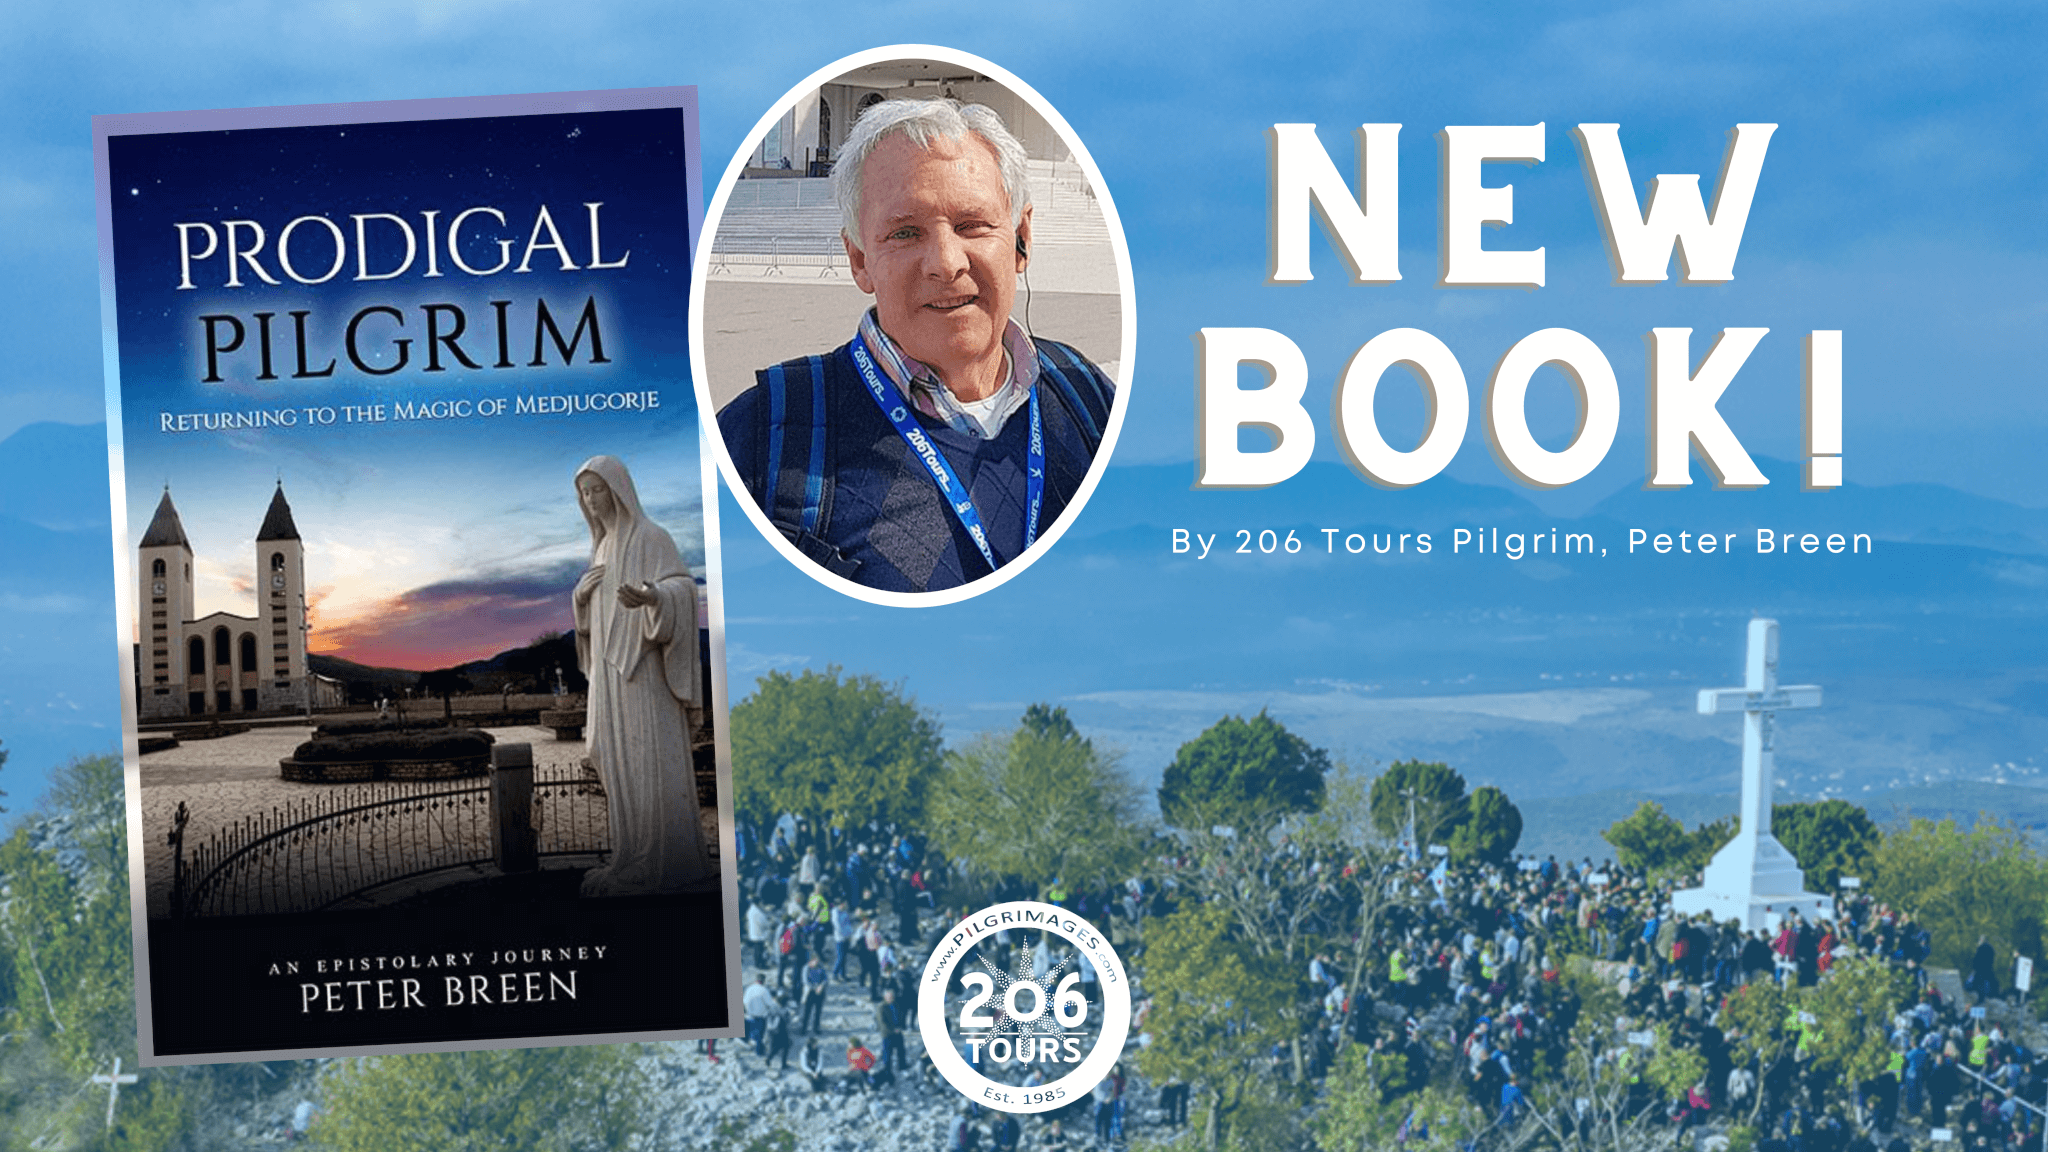 Prodigal Pilgrim Book Medjugorje 206 Tours